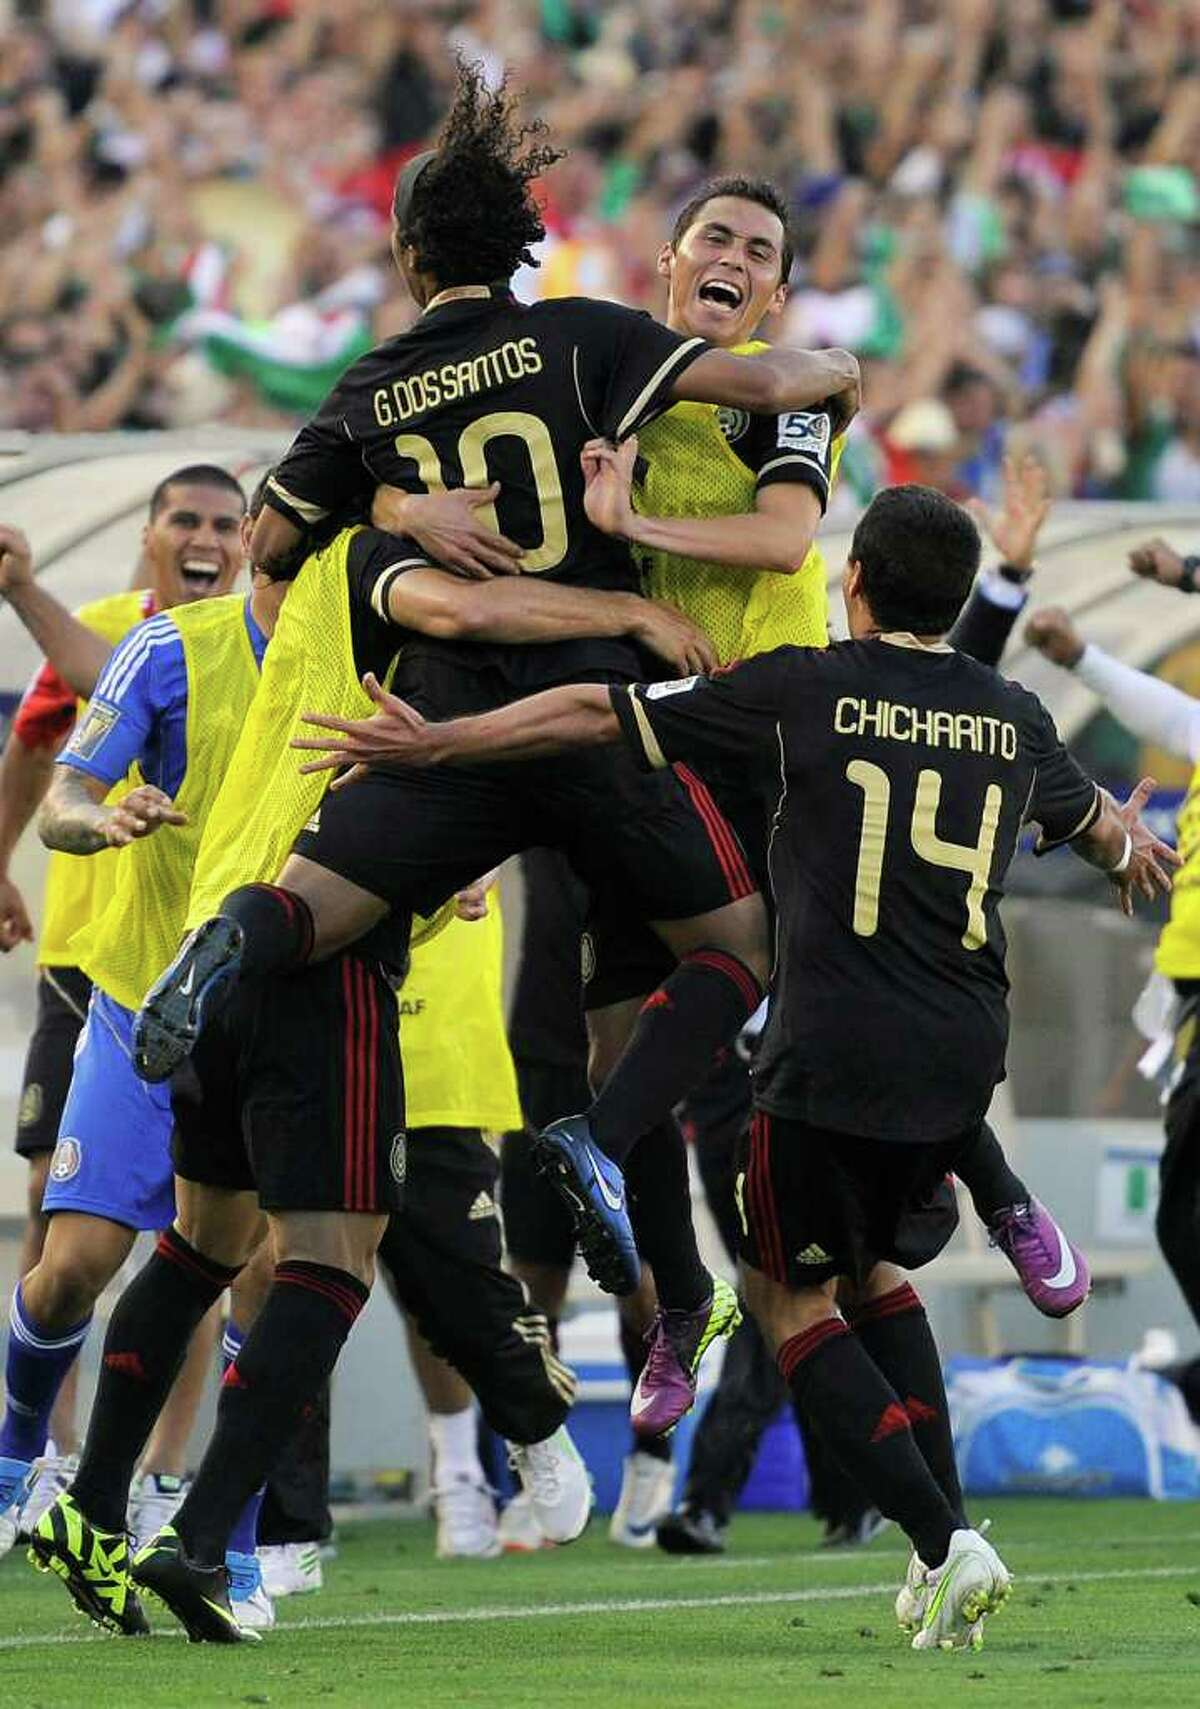 Mexico's Giovani Dos Santos (10) celebrates his goal with teammates during the second half of the CONCACAF Gold Cup soccer final against United States, Saturday, June 25, 2011, in Pasadena, Calif. Mexico won 4-2. (AP Photo/Mark J. Terrill)